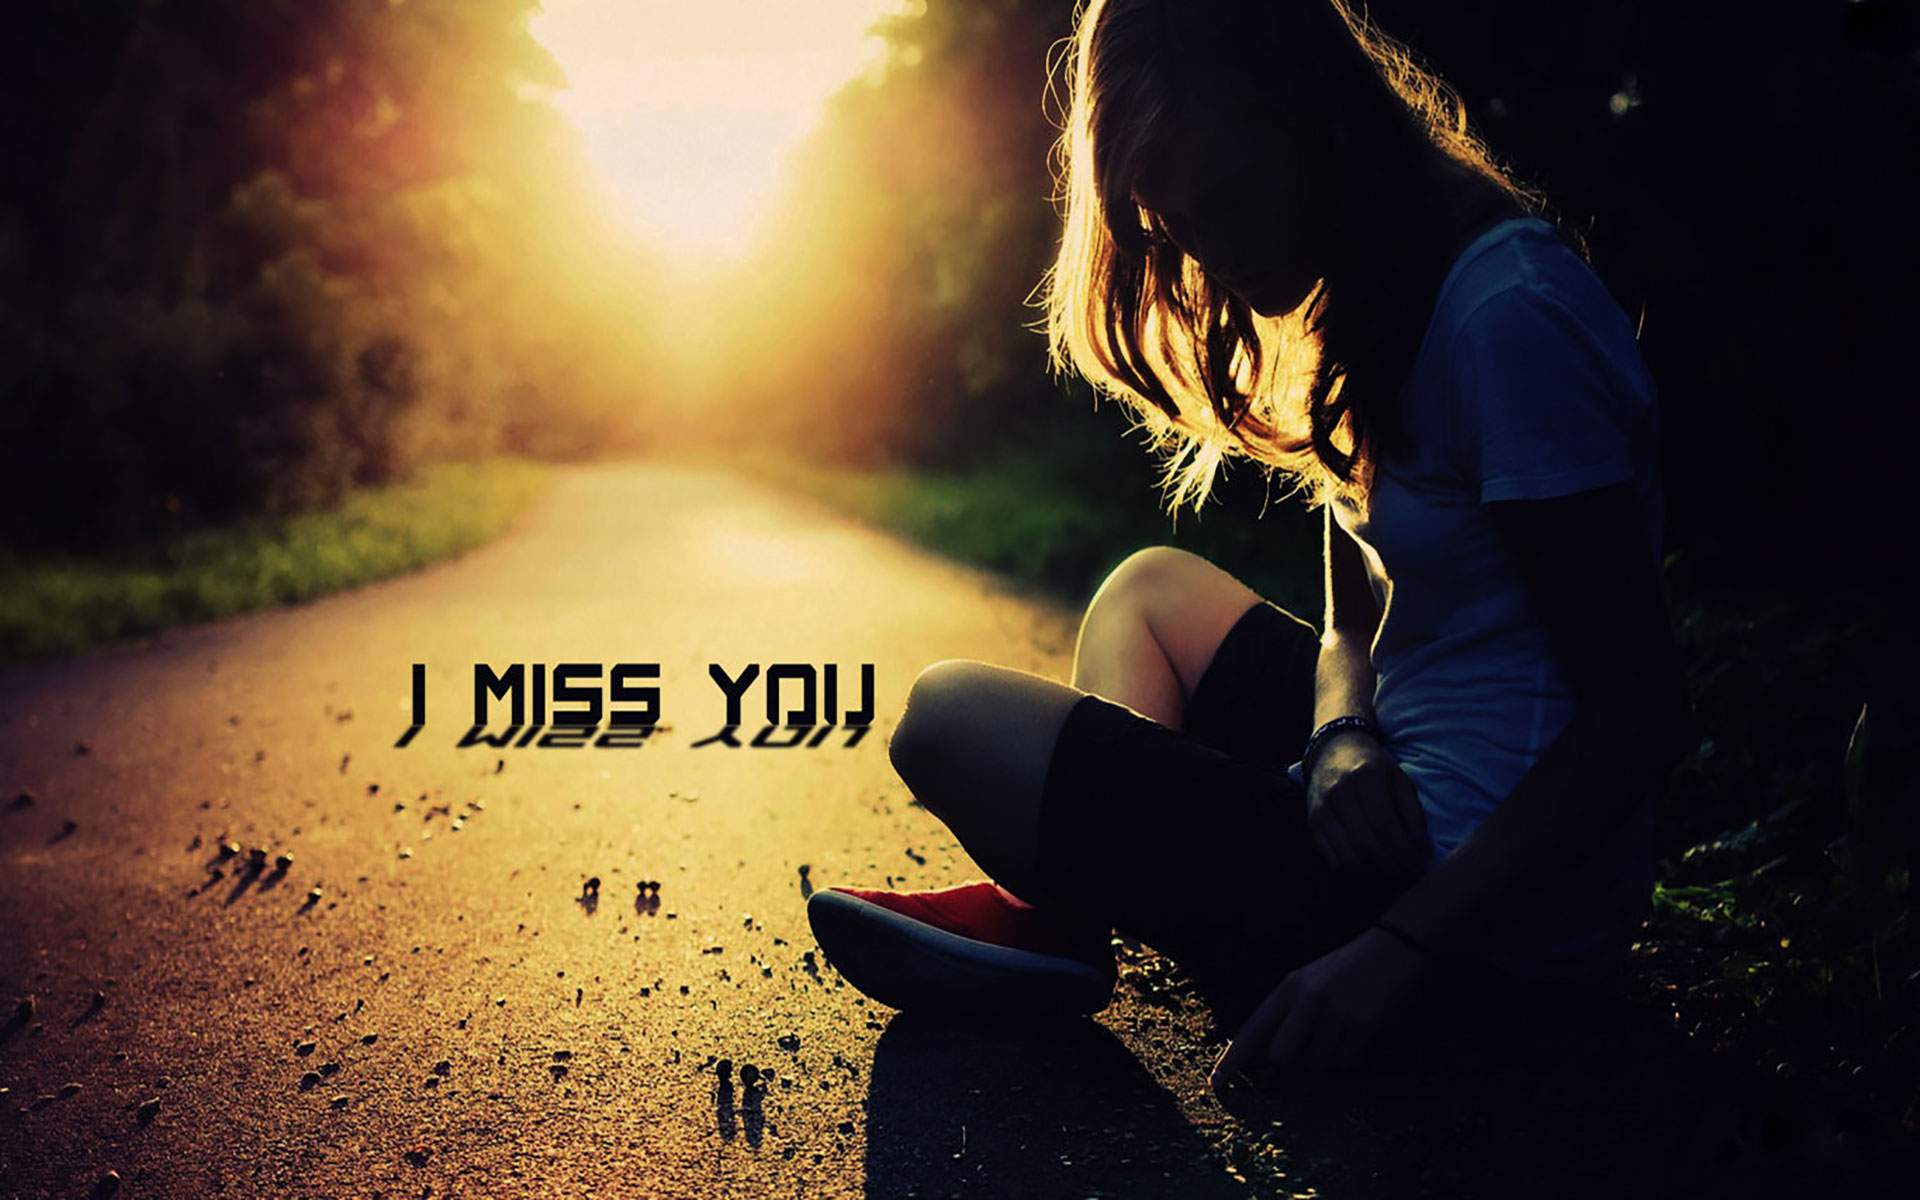 HD I Miss You Wallpaper for him or herRomantic Wallpapers ...